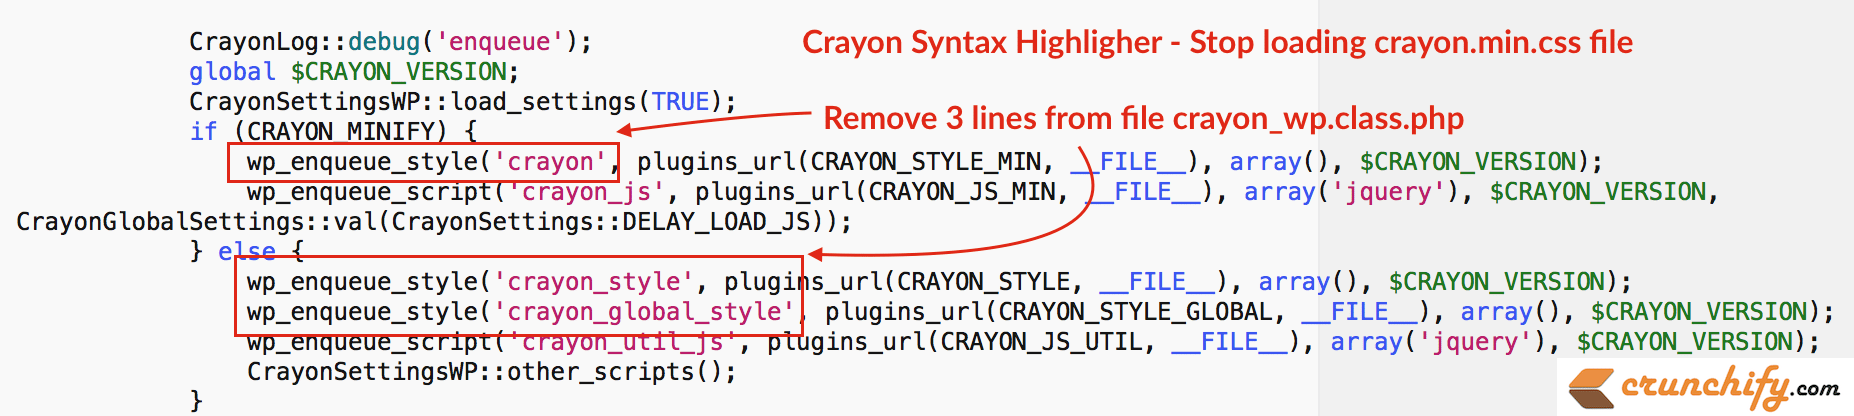 Crayon Syntax Highligher - Stop loading crayon.min.css file